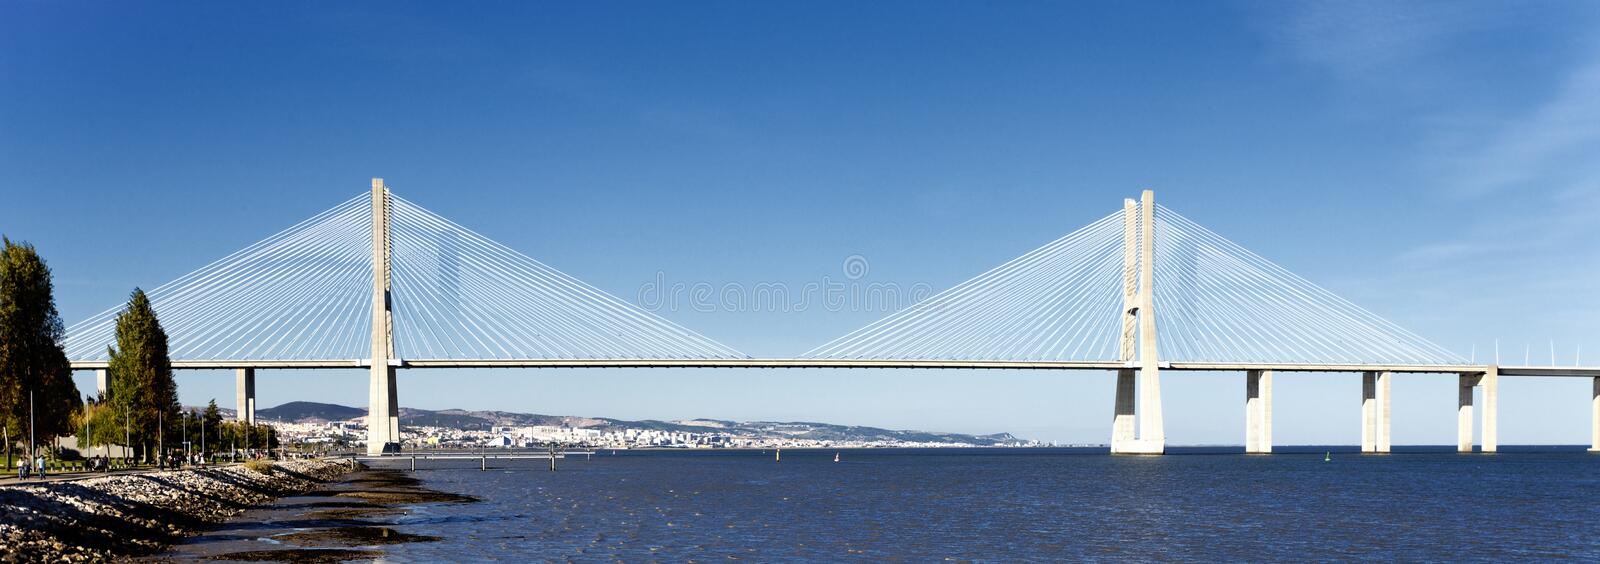 Download Vasco Da Gama Bridge In Lisbon Stock Photo - Image: 23563210